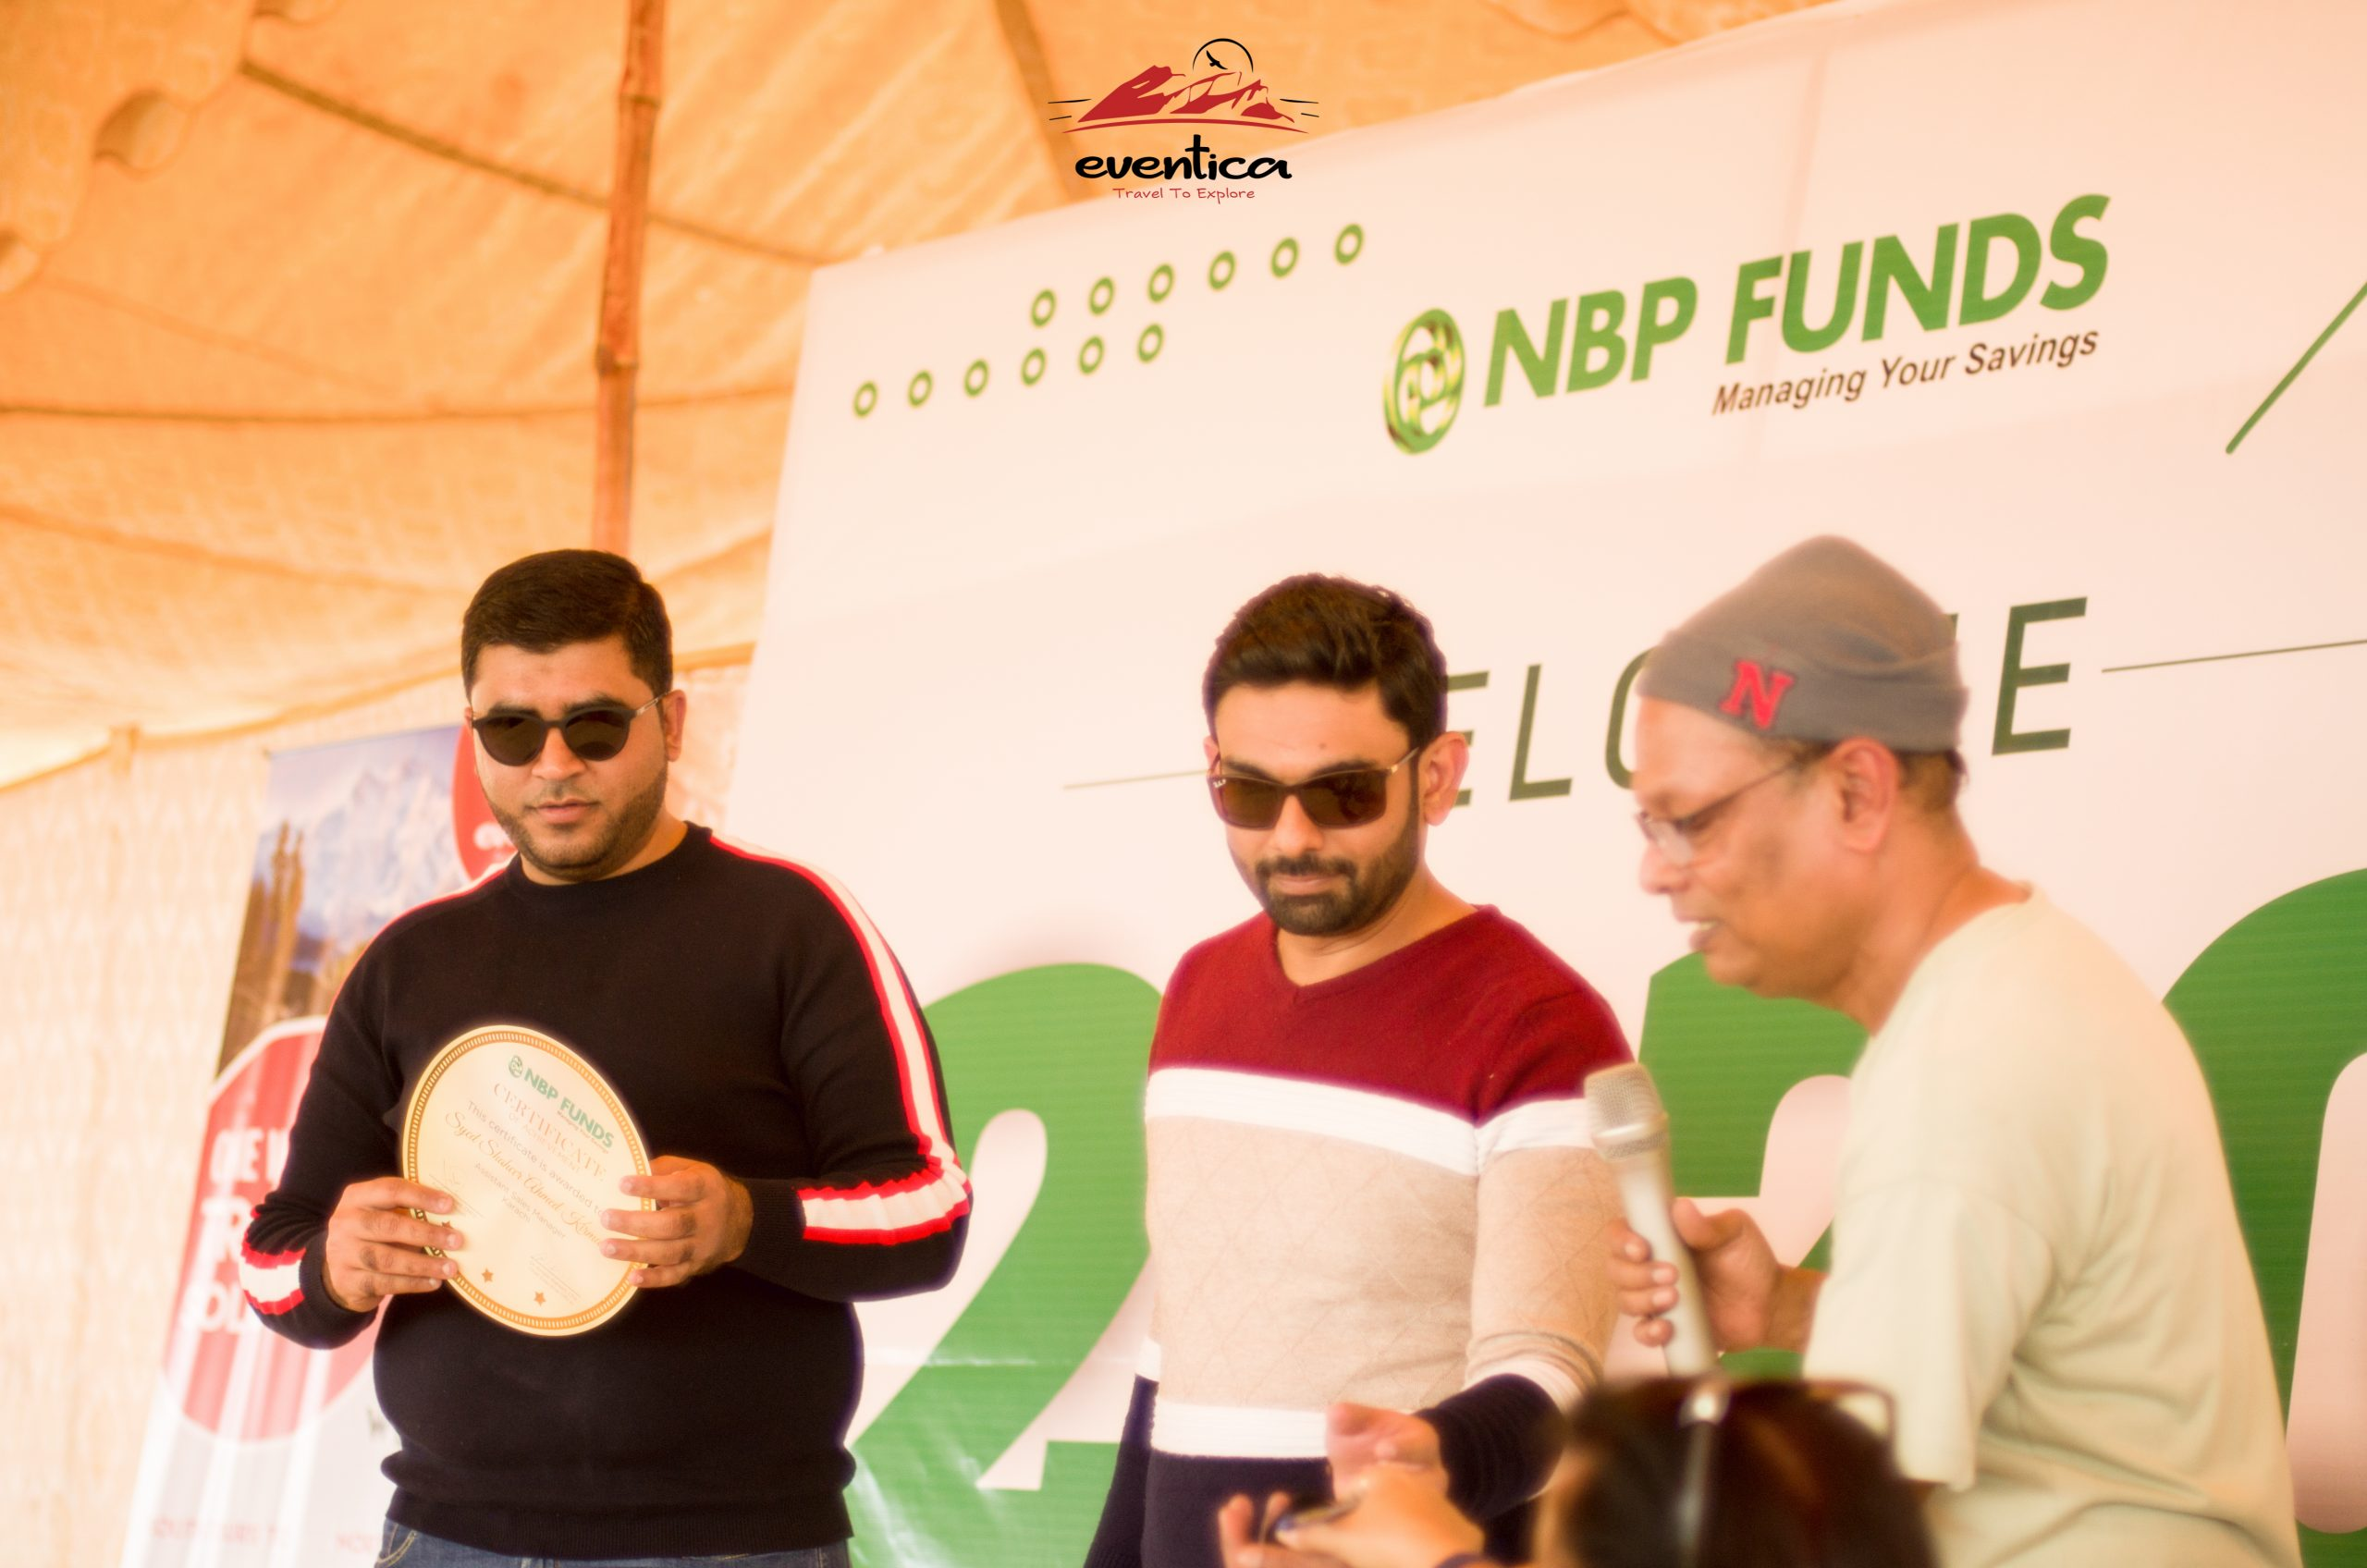 national bank day event